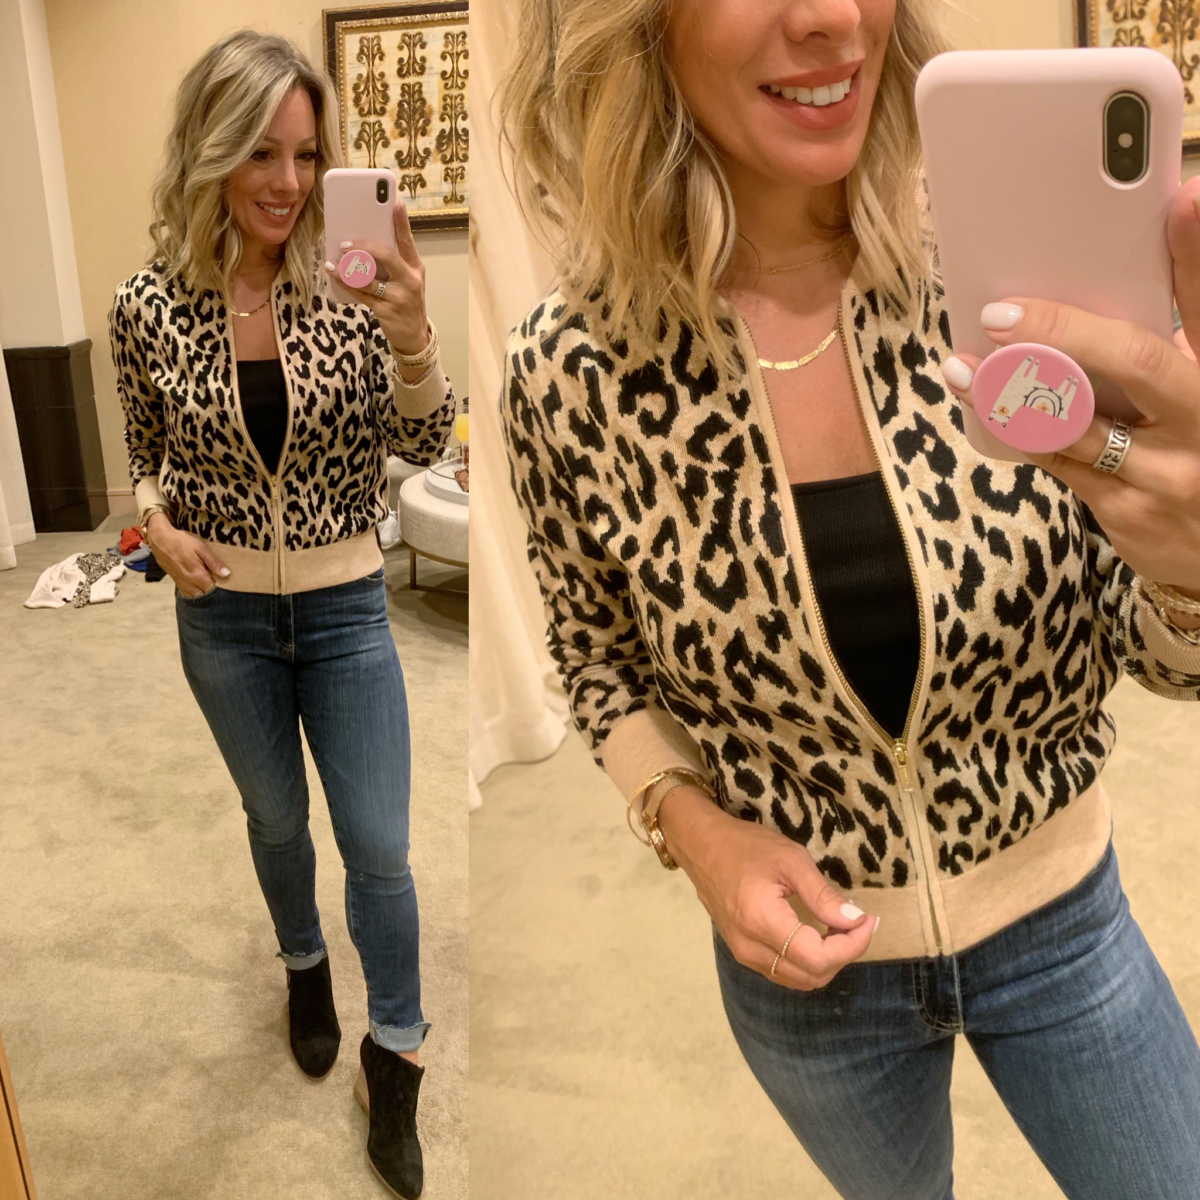 Nordstrom Anniversary Sale - black top with a J crew leopard sweater, jeans and black boots